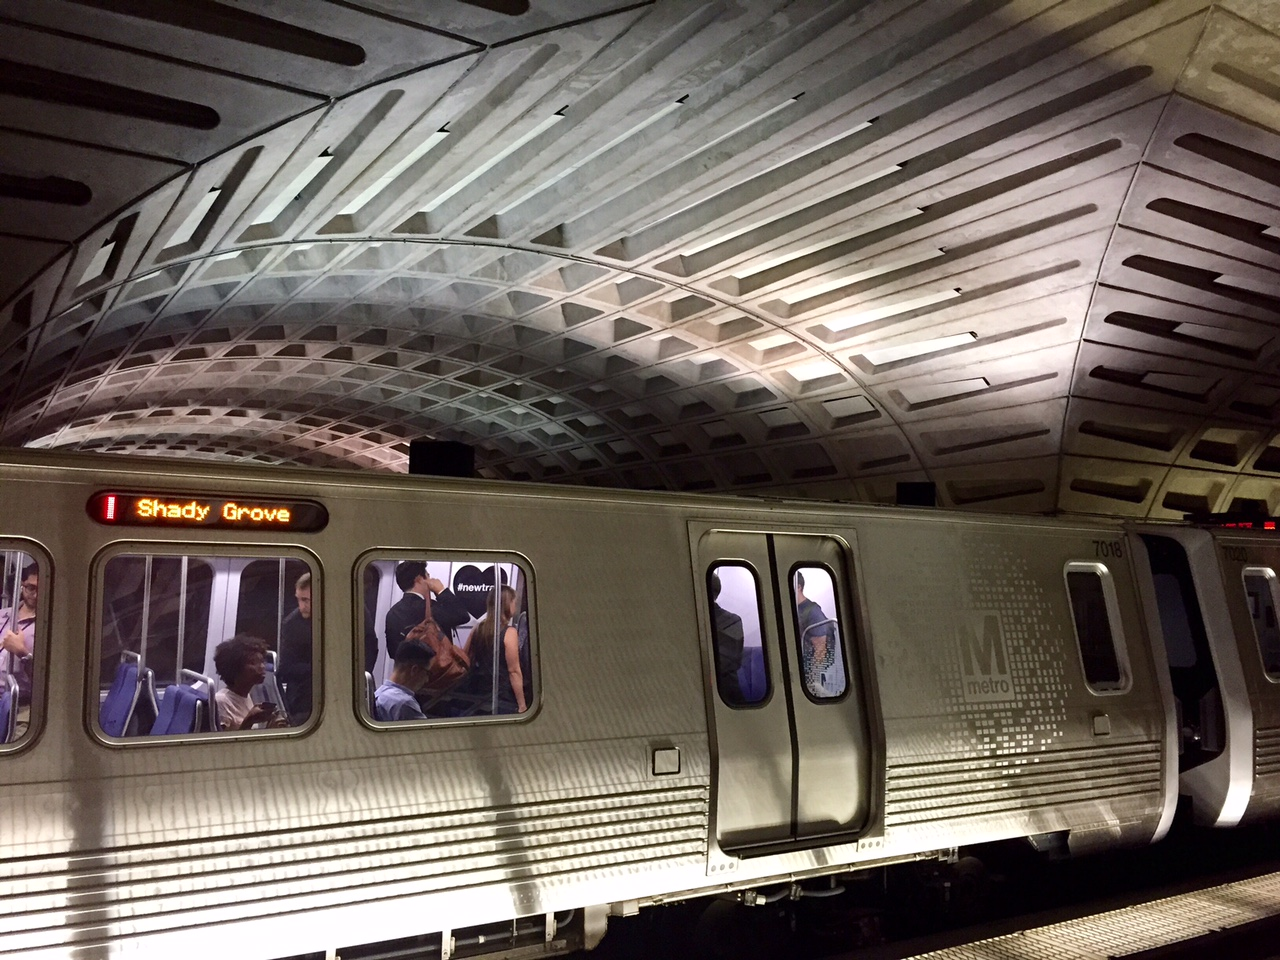 Metro Shake-up Won't Immediately Change Delays, Persistent